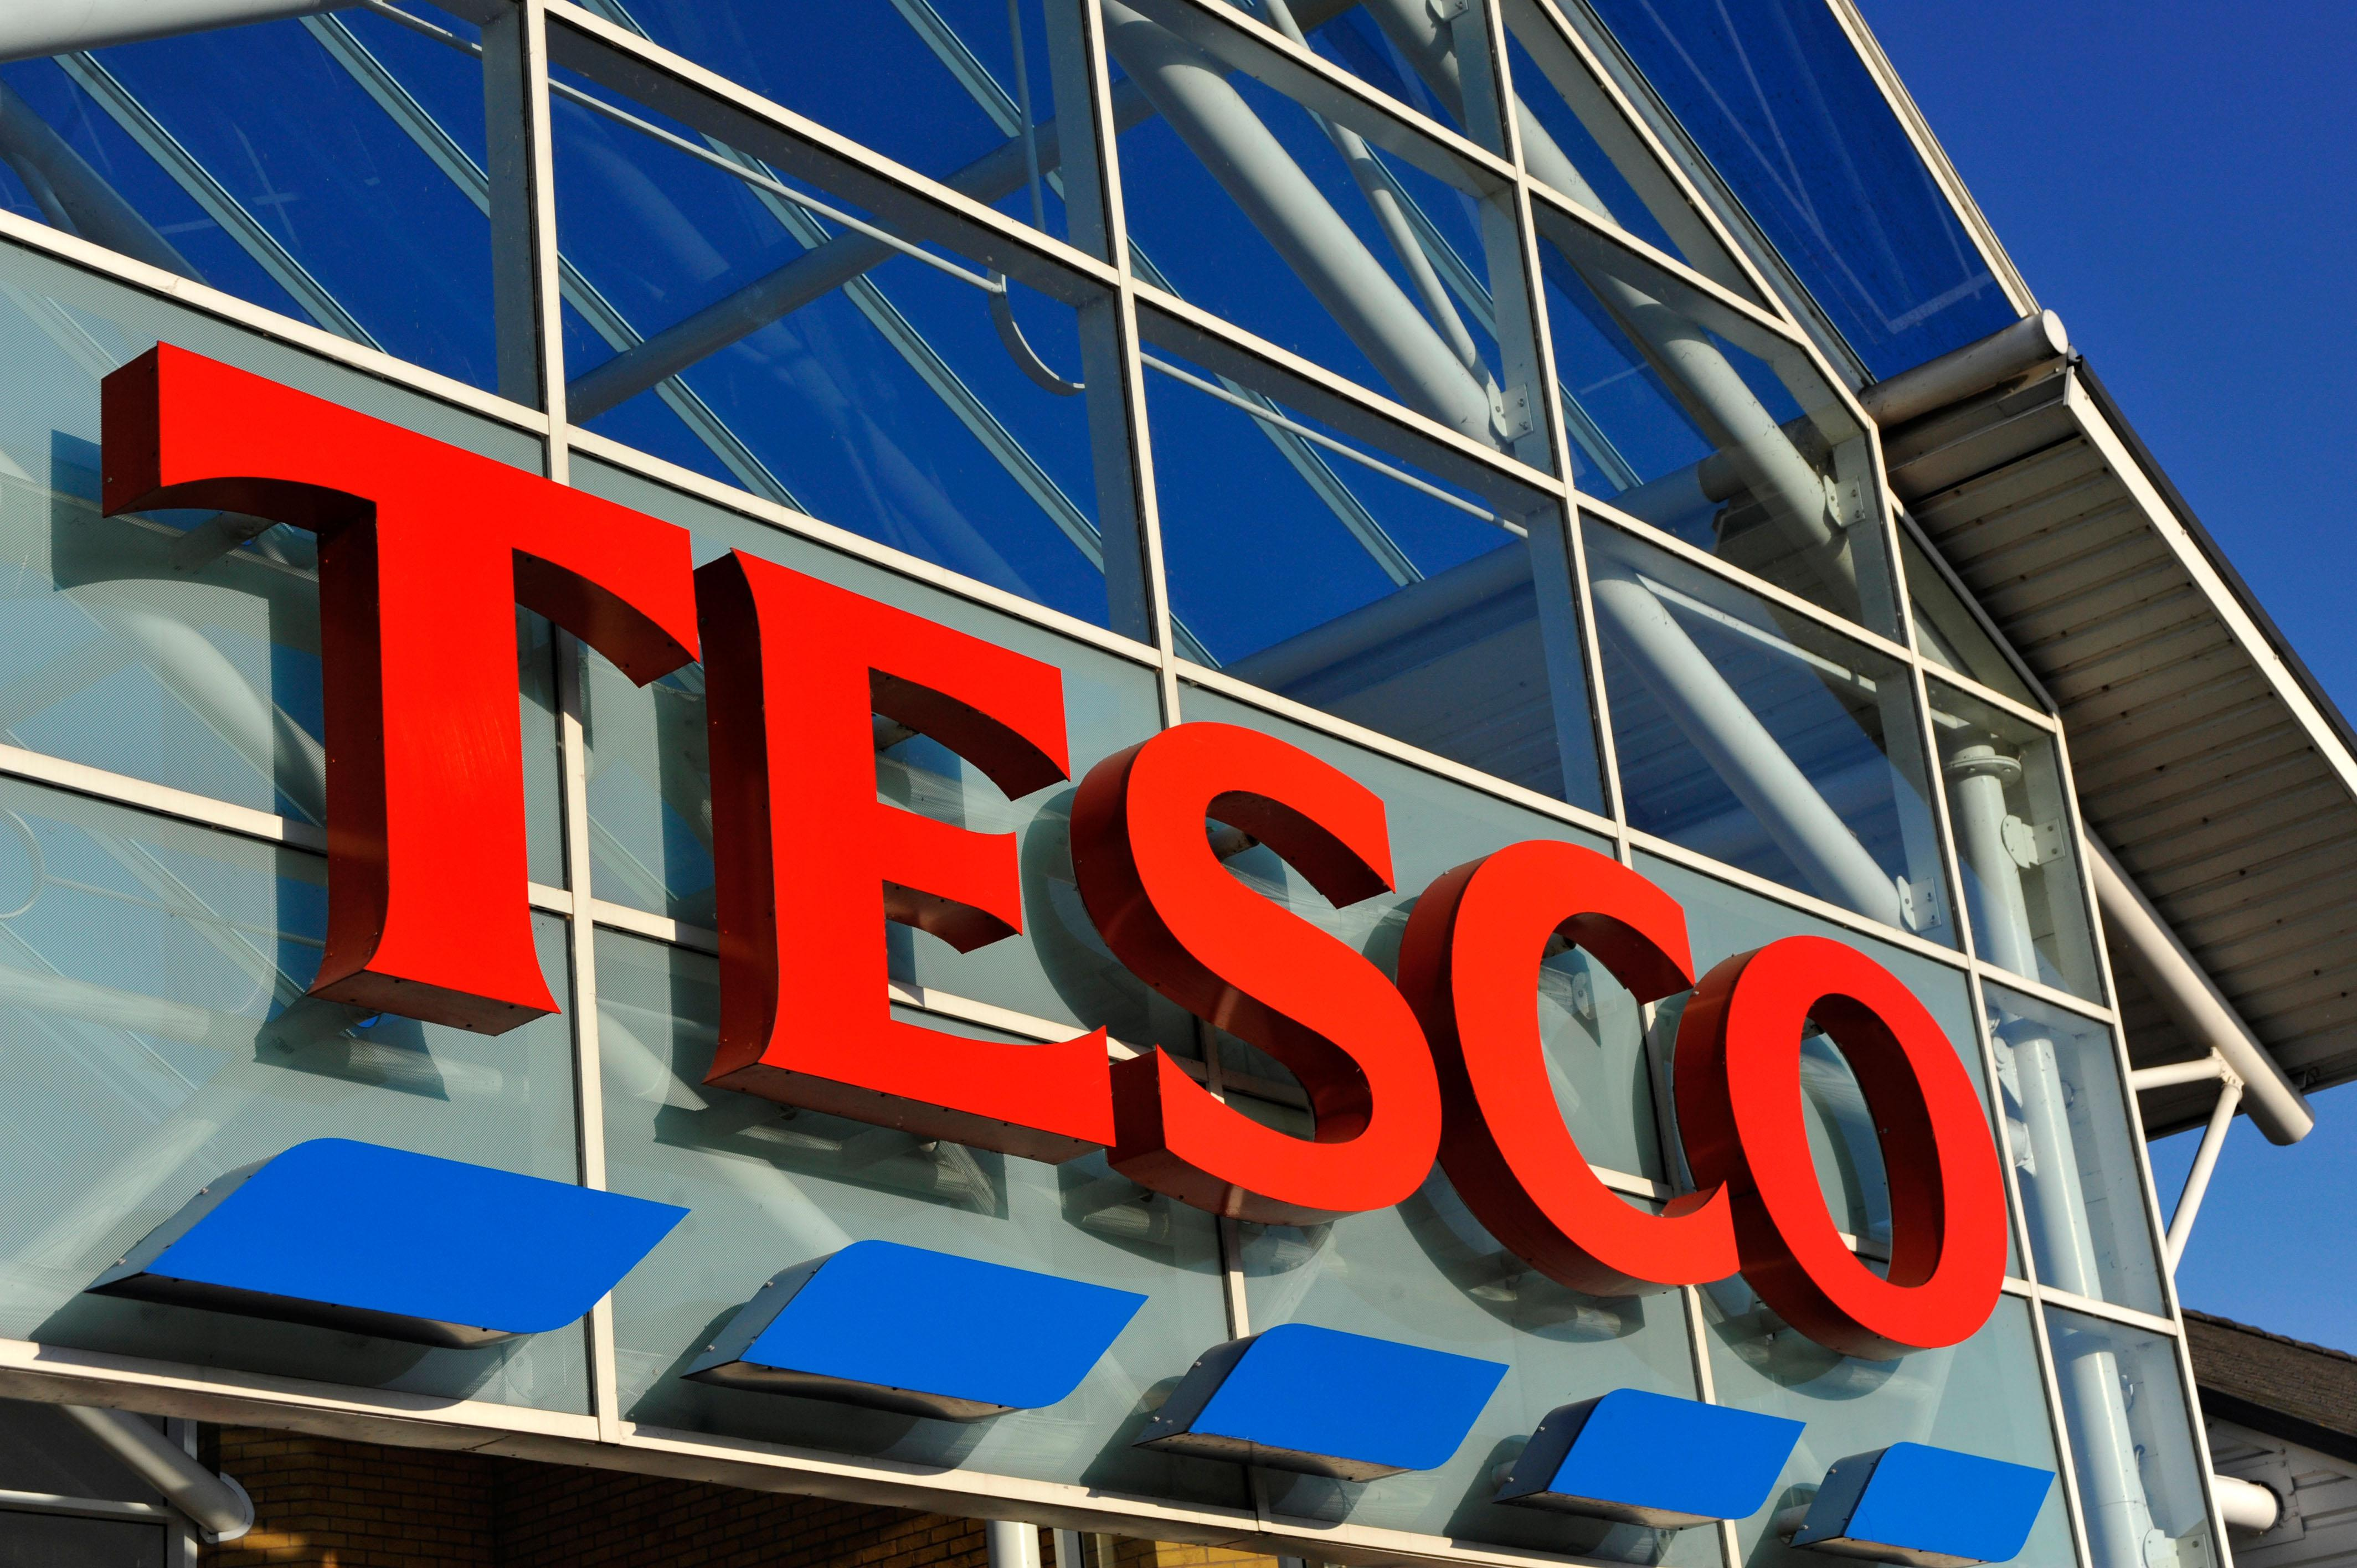 Tesco chesterfield travel money opening times distination